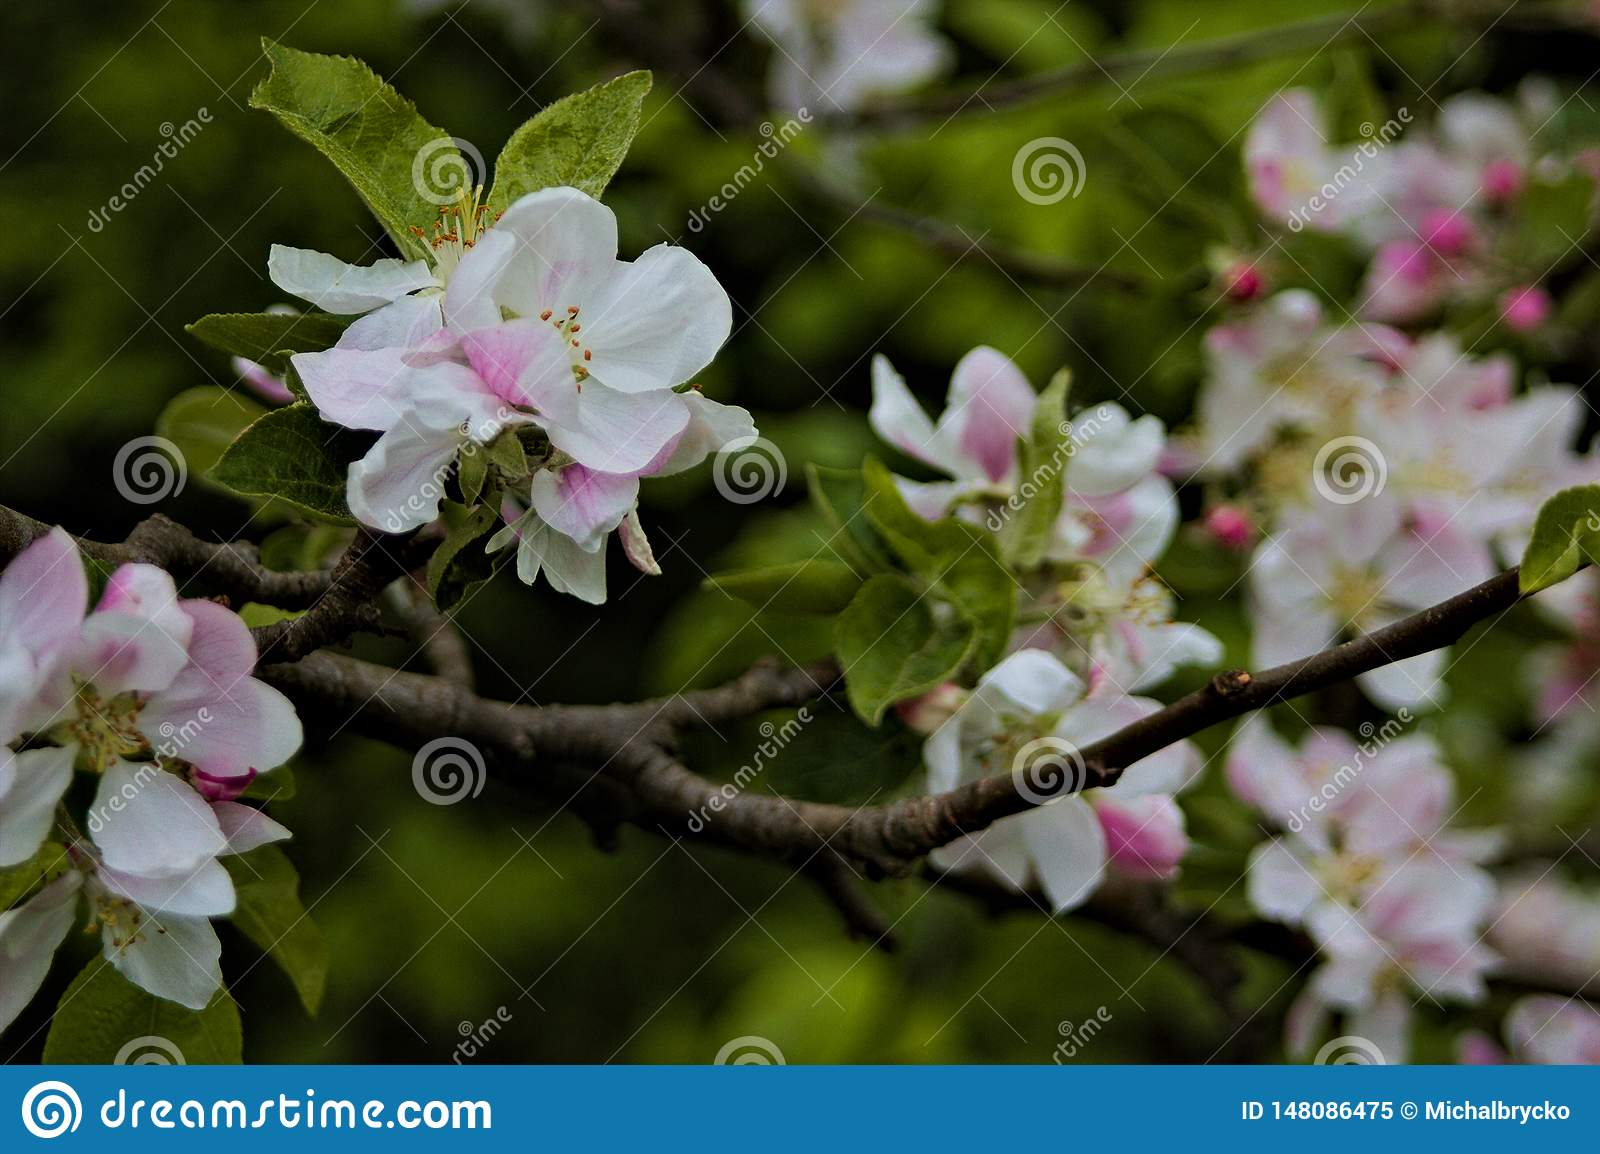 White-pink flowers on brown branch with green leafs